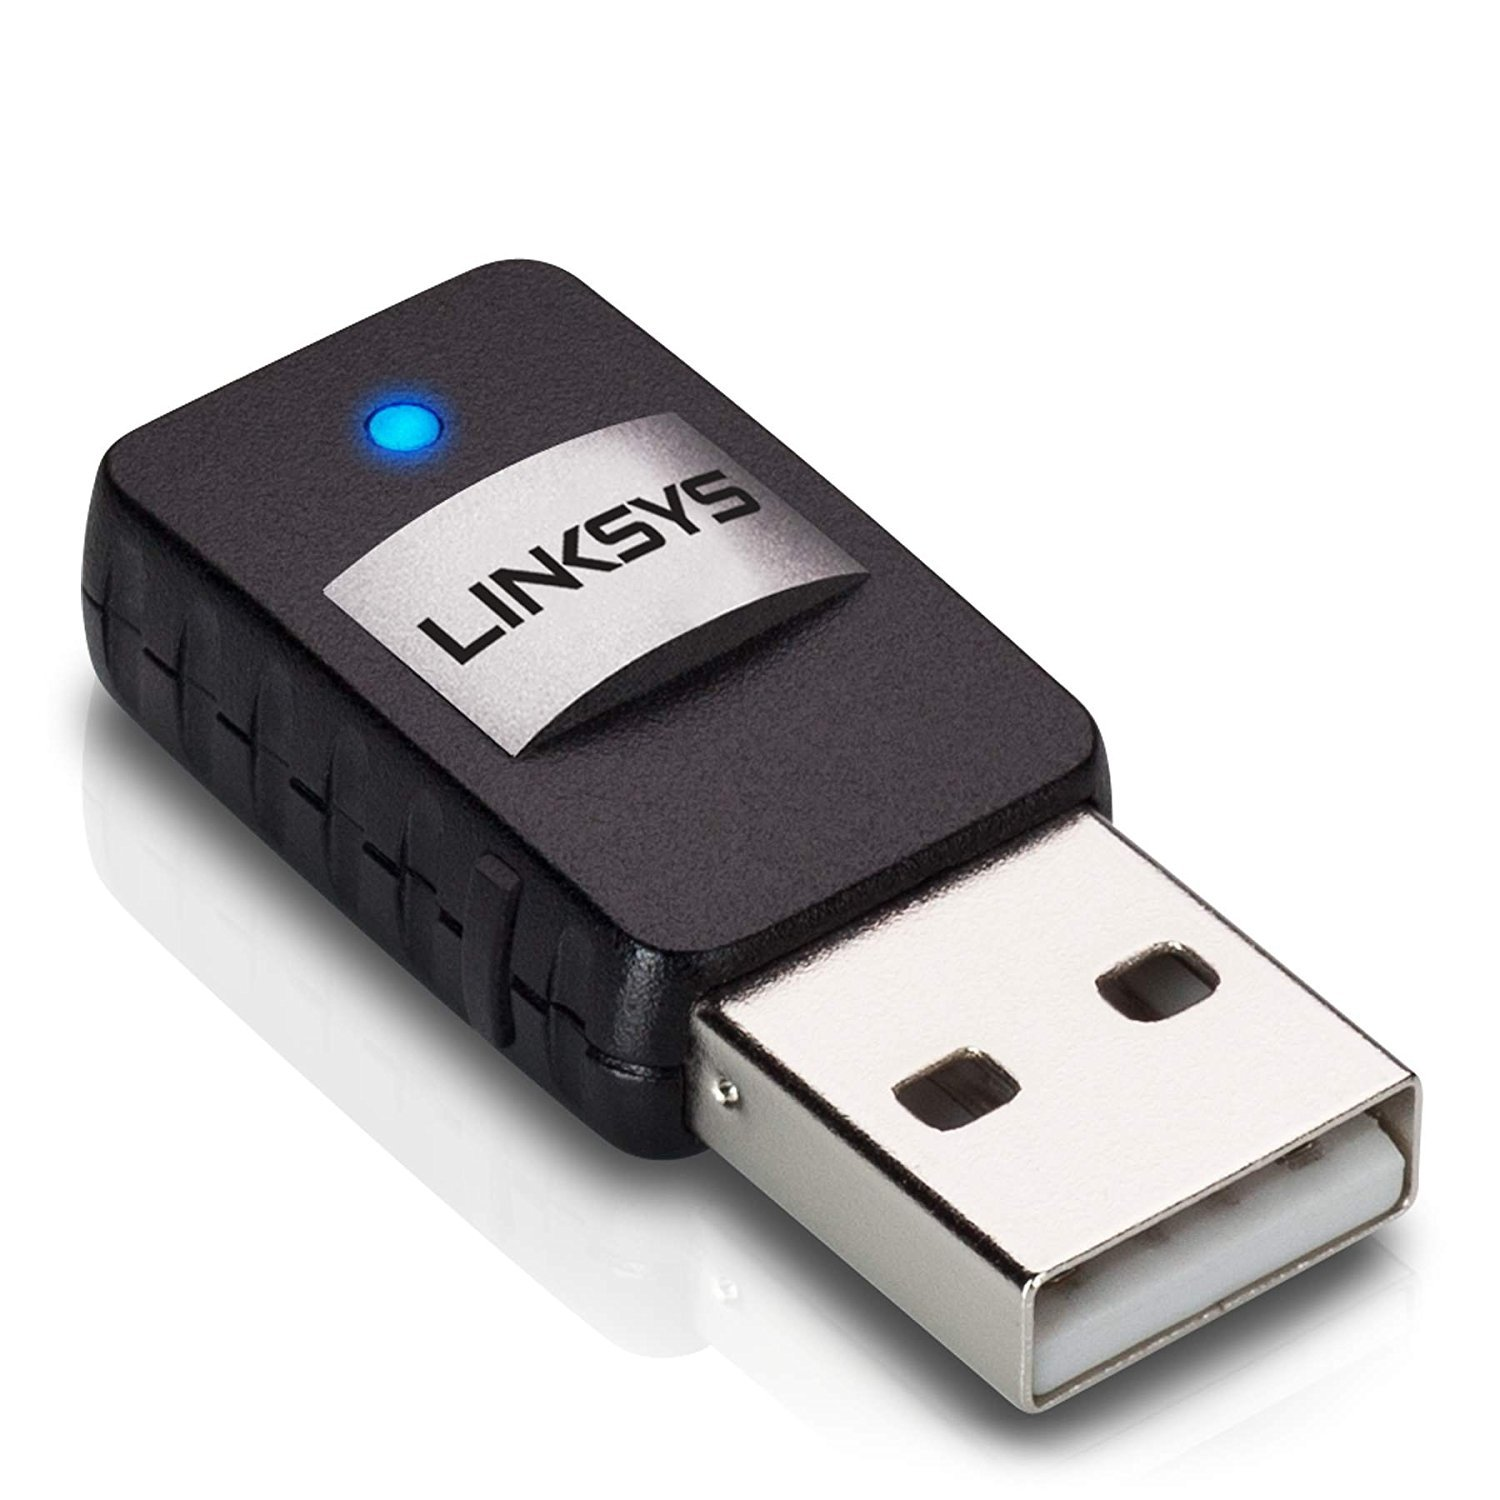 Linksys Wireless Mini USB Adapter AC 580 Dual Band (AE6000-RM2) (Certified Refurbished)